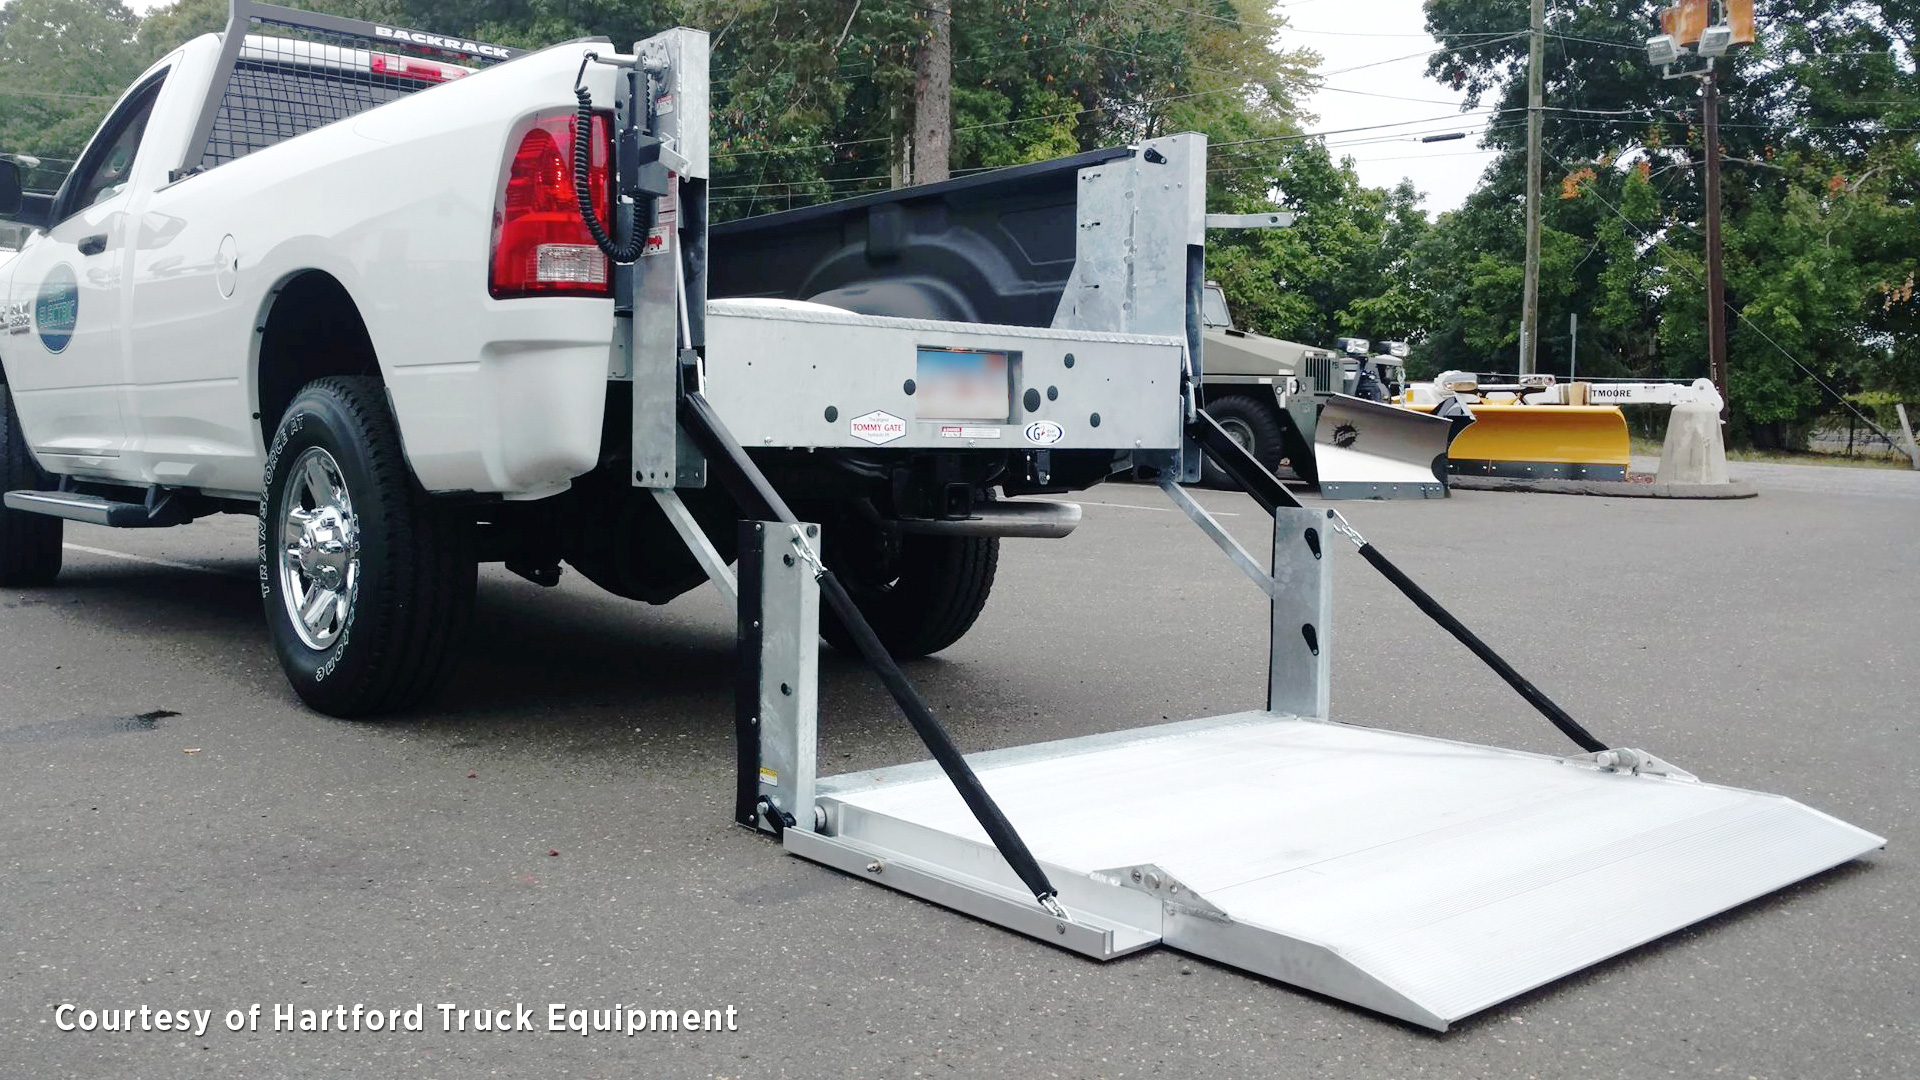 Tommy Gate Liftgates For Pickups What To Know How Install Wiring Harness Trailer Hitch Moreover Ford Haulers Of Spillable Liquids Will Need A Material That Allows Liquid Pass Through The Platform Loading Surface Whereas Operators Working In Highly